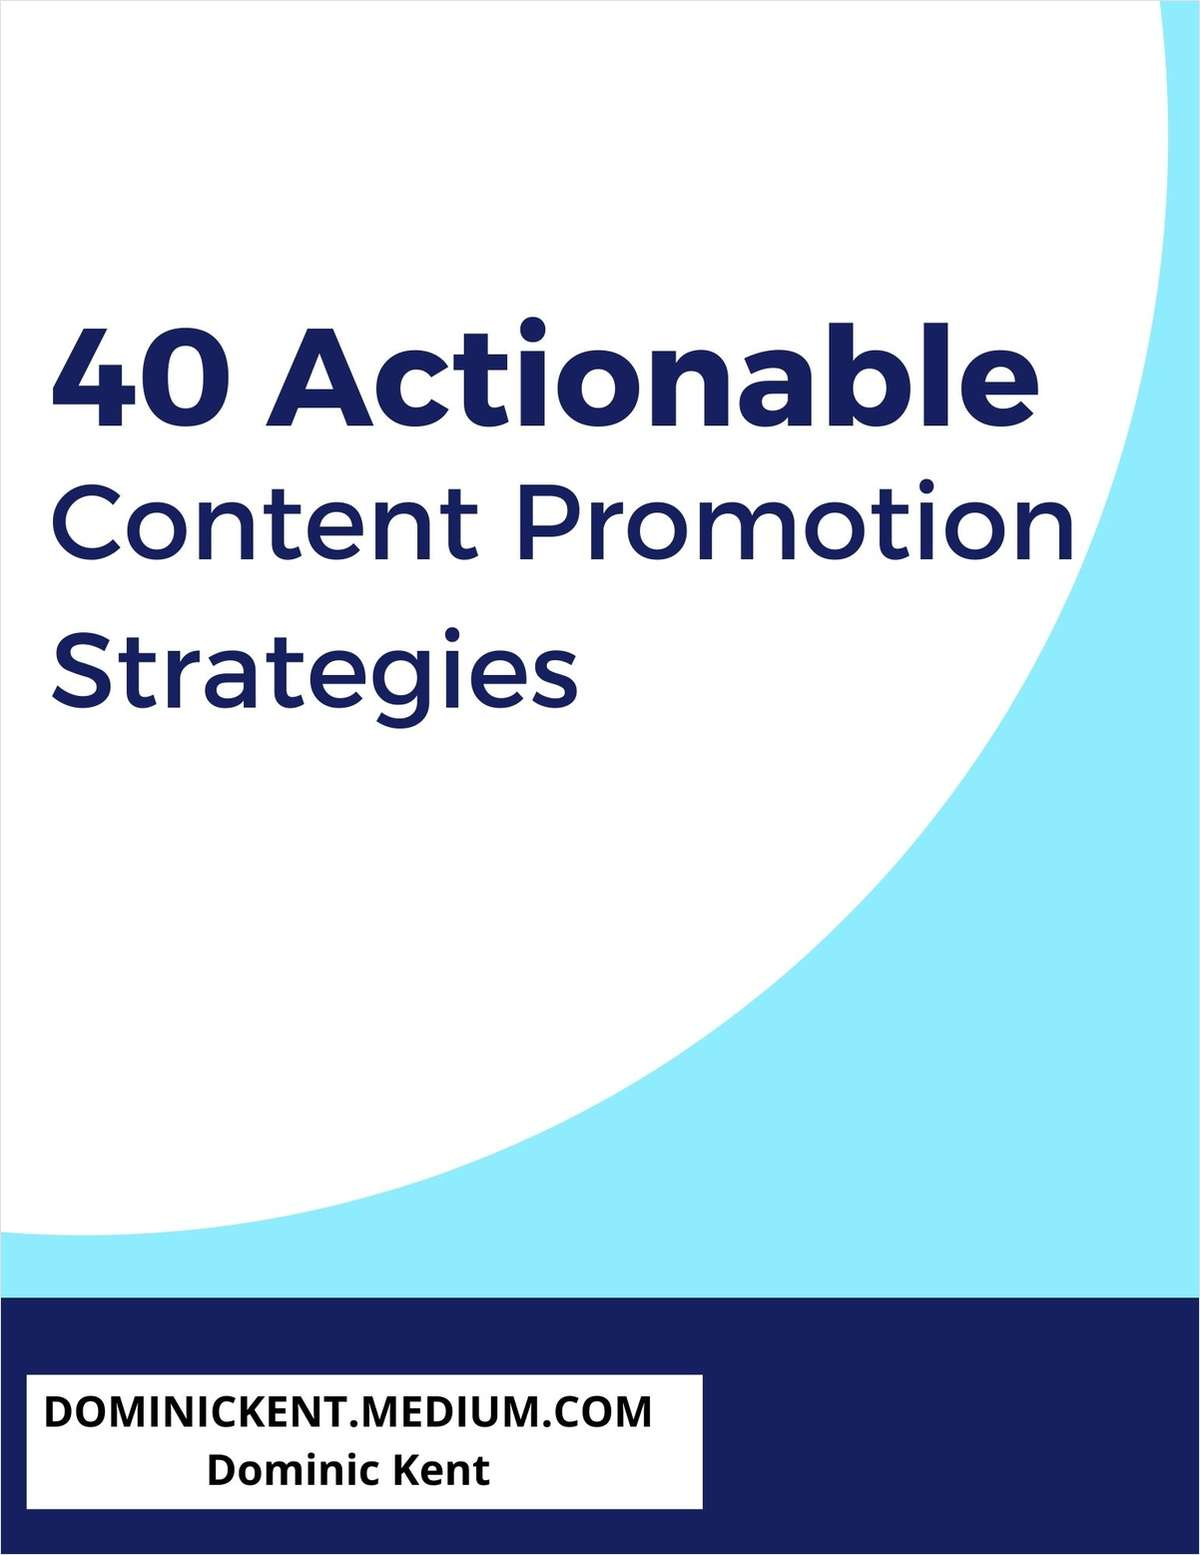 40 Actionable Content Promotion Strategies [With Examples]